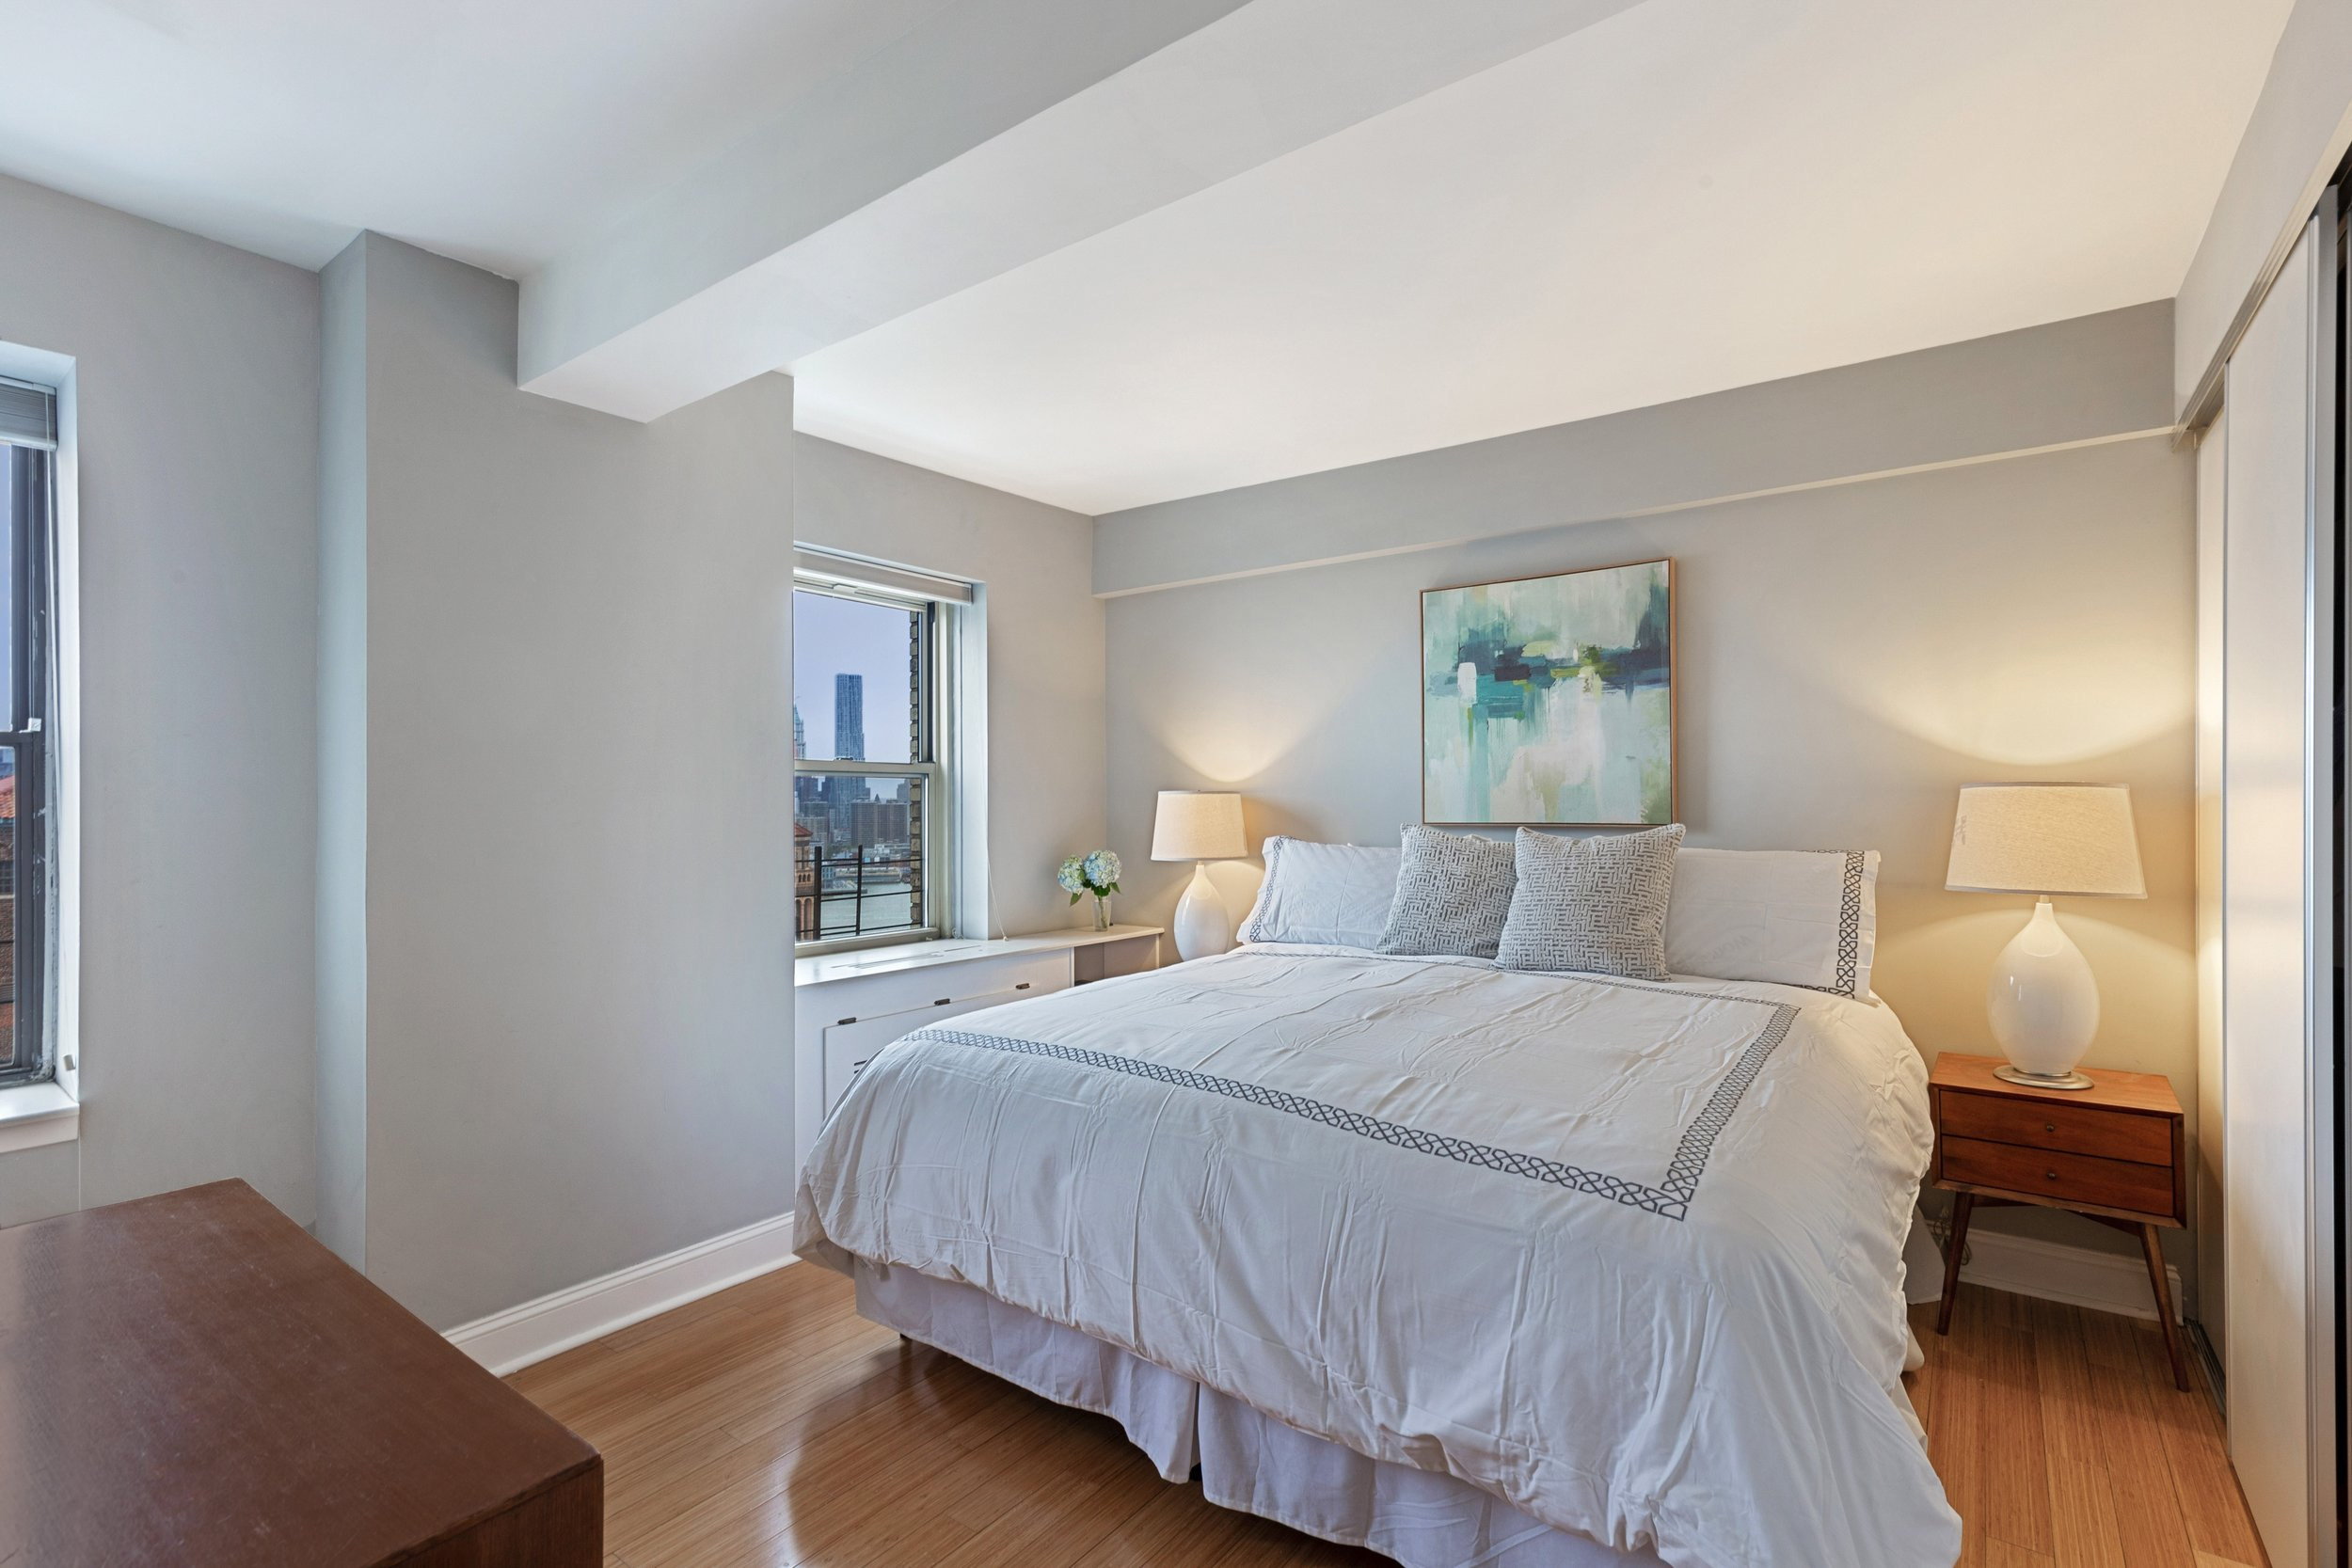 5_111HicksStreet_19B_14_MasterBedroom_HiRes.jpg